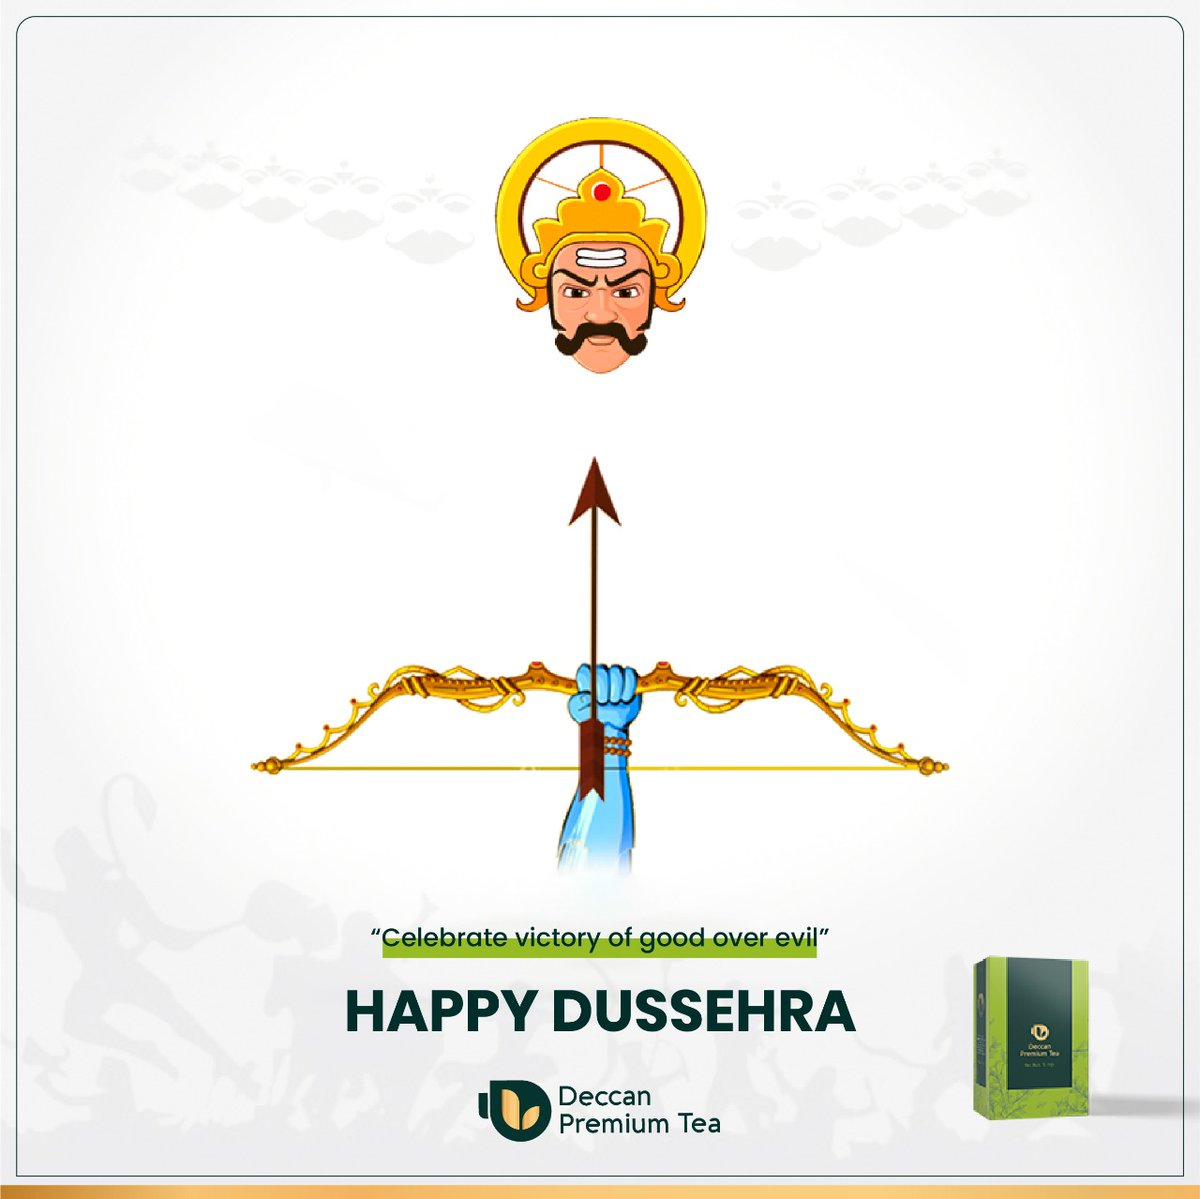 Let's celebrate the victory of the forces of Good over Evil. Deccan Premium Tea Wishes you a very Happy Dussehra!  #pune #dussehra #dussehra2020 #dussehraspecial #dussehracelebration #dussehrawishes #Mumbai #konkan #Maharashtra https://t.co/SJsG4yNoEt